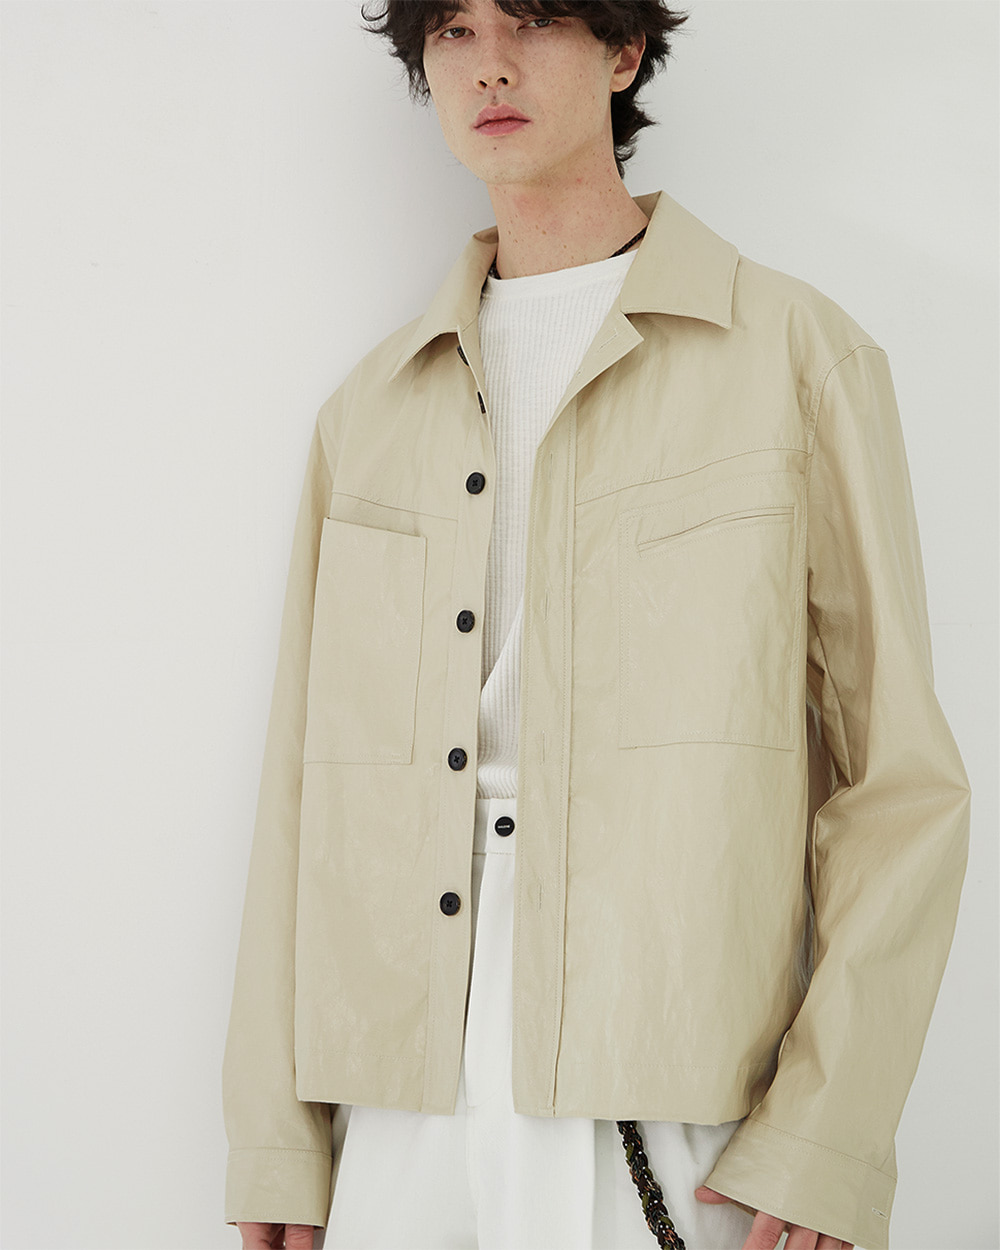 HALEINE알렌느 CREAM 3D detail eco leather shirts jacket(NJ002)